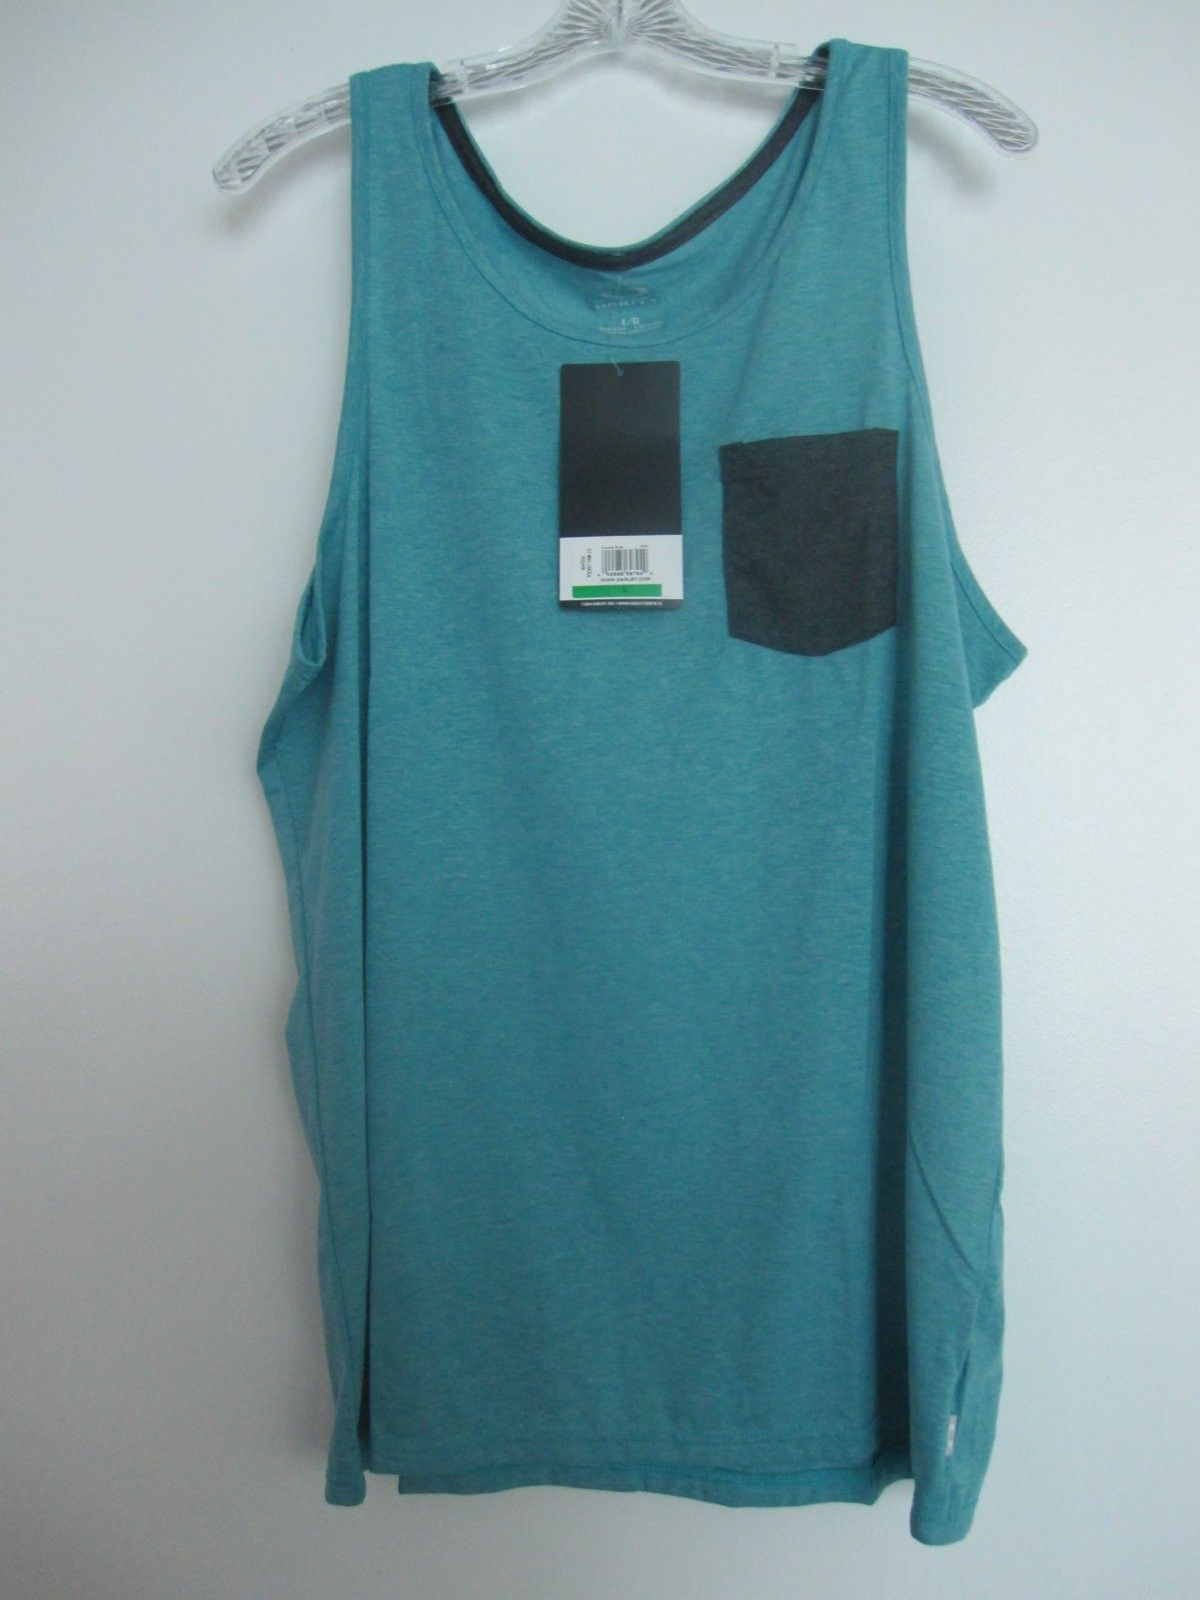 New Oakley clothing items size L - pic 7.JPG